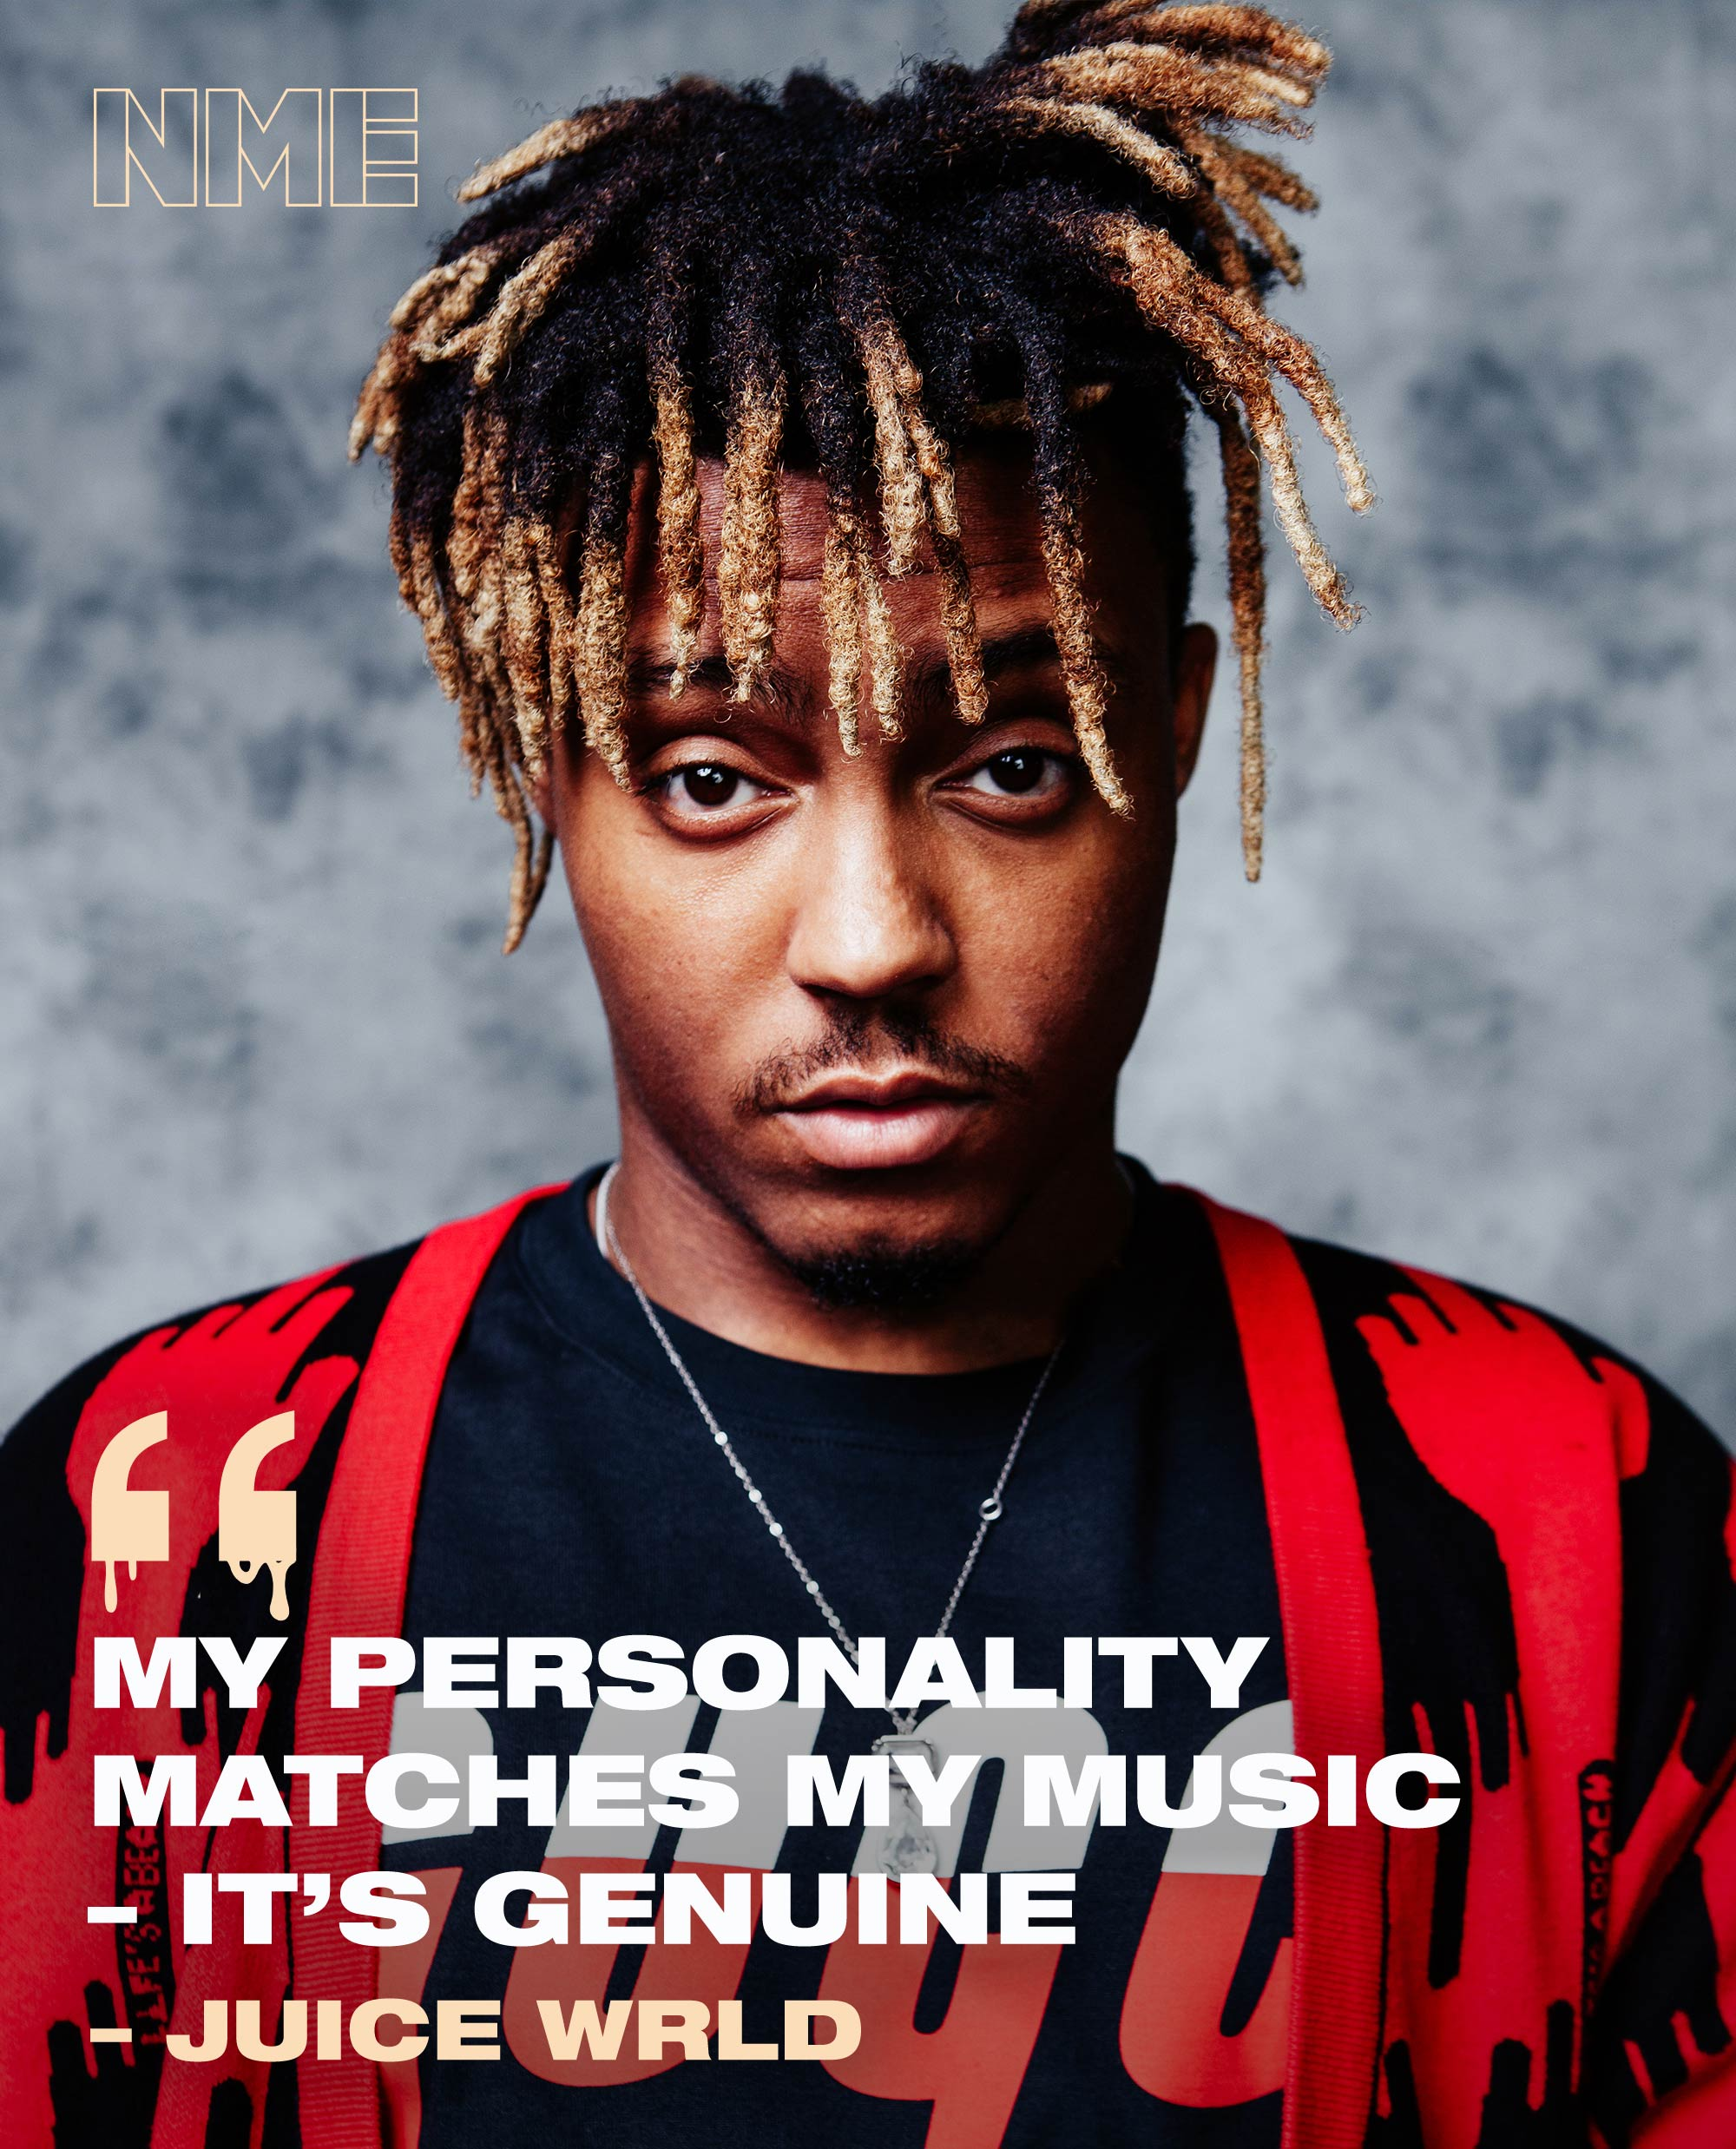 Juice Wrld Interview The Rap Game Is So Muthafuc In Soft Right Now